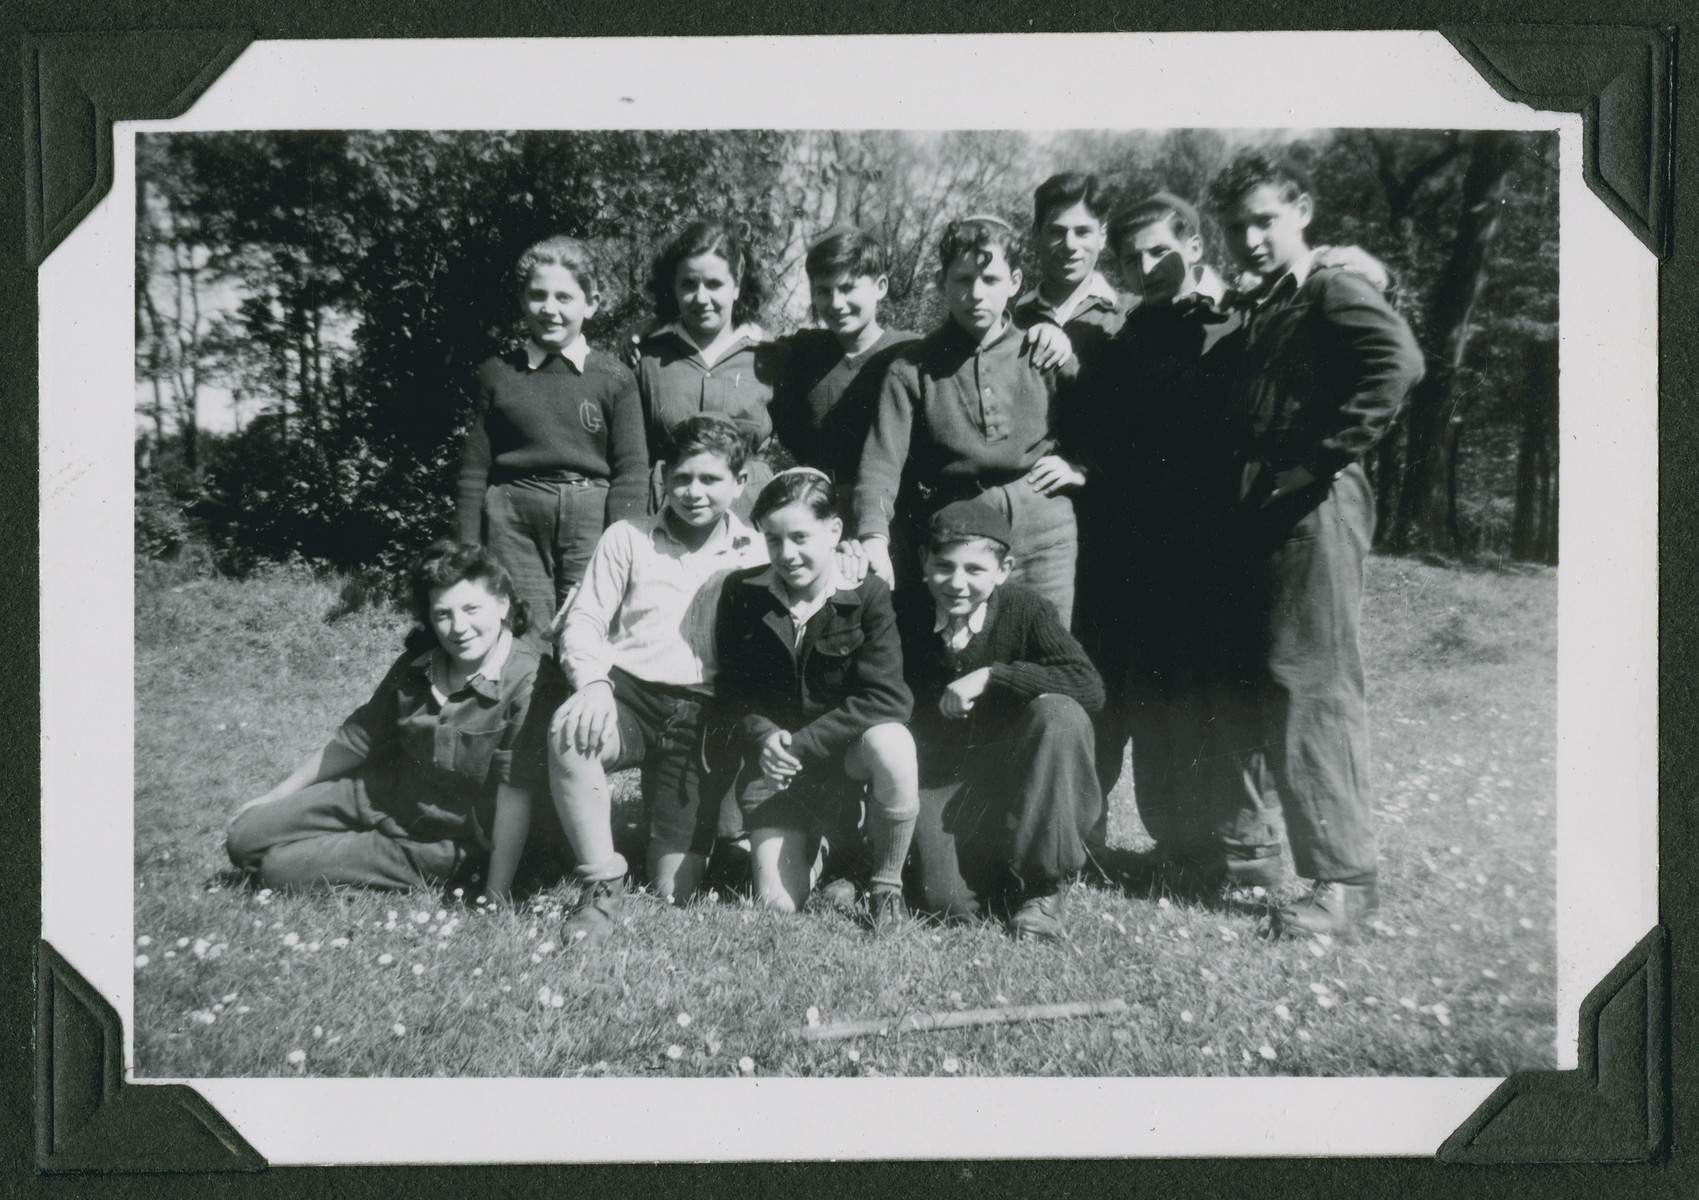 Group portrait of religious Jewish youth in a hachshara in Marquain, Belgium.